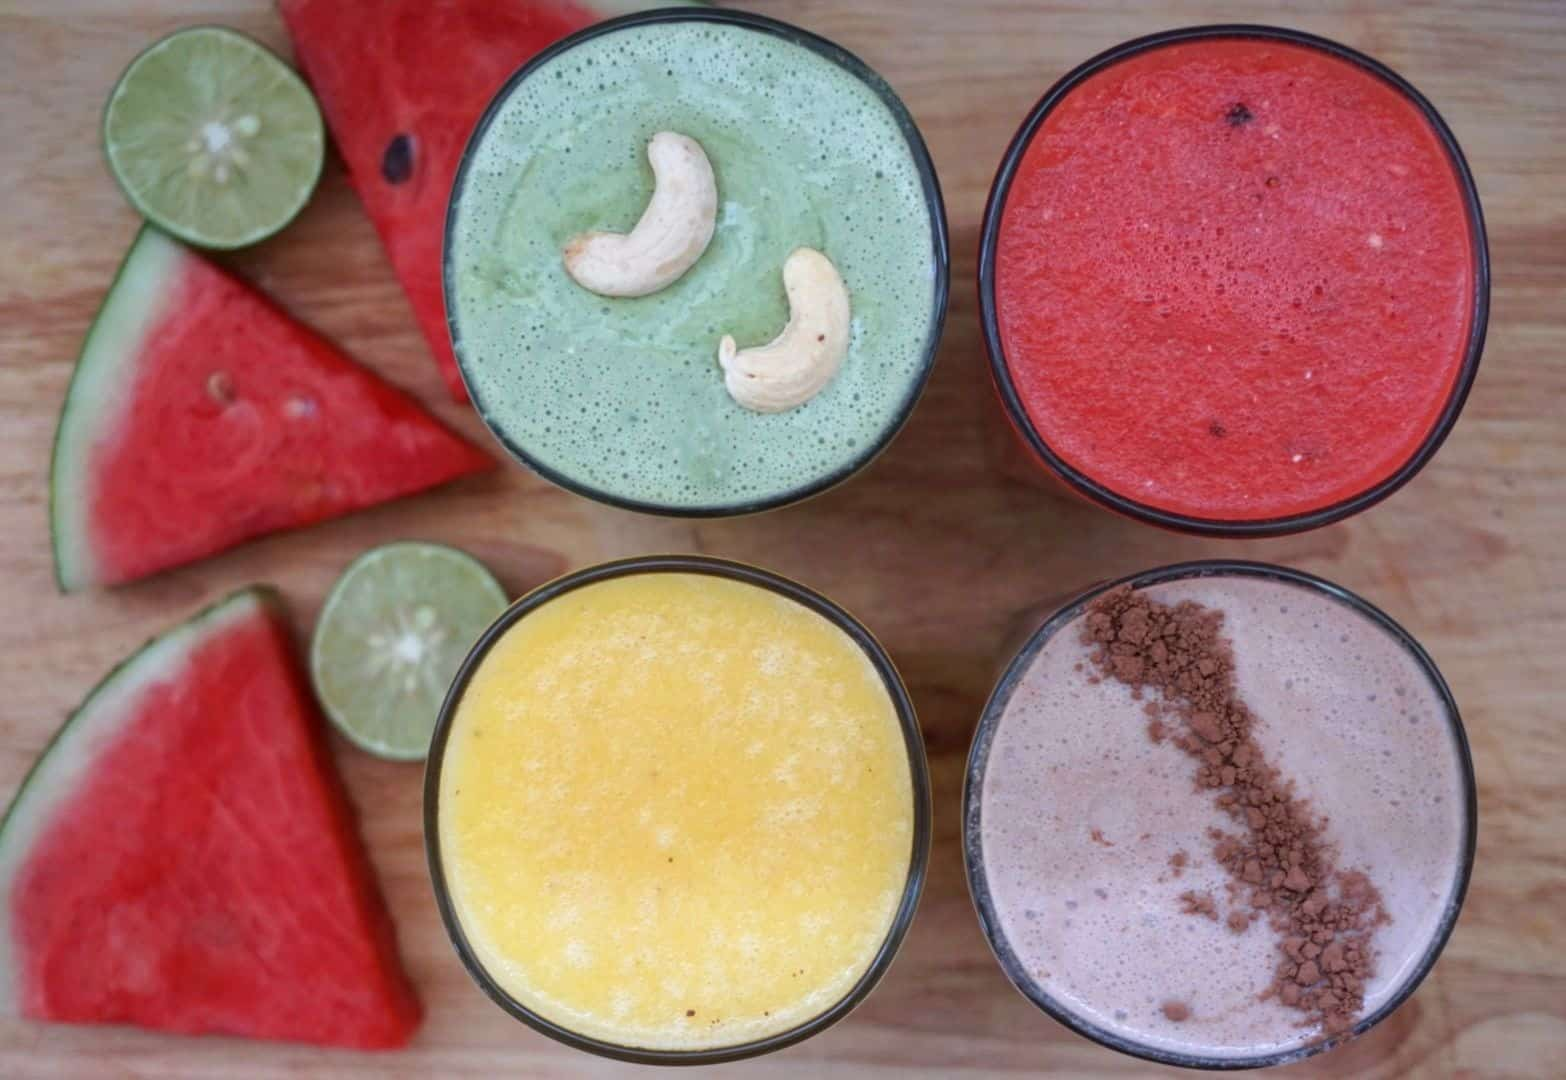 Things to do in Smoothies